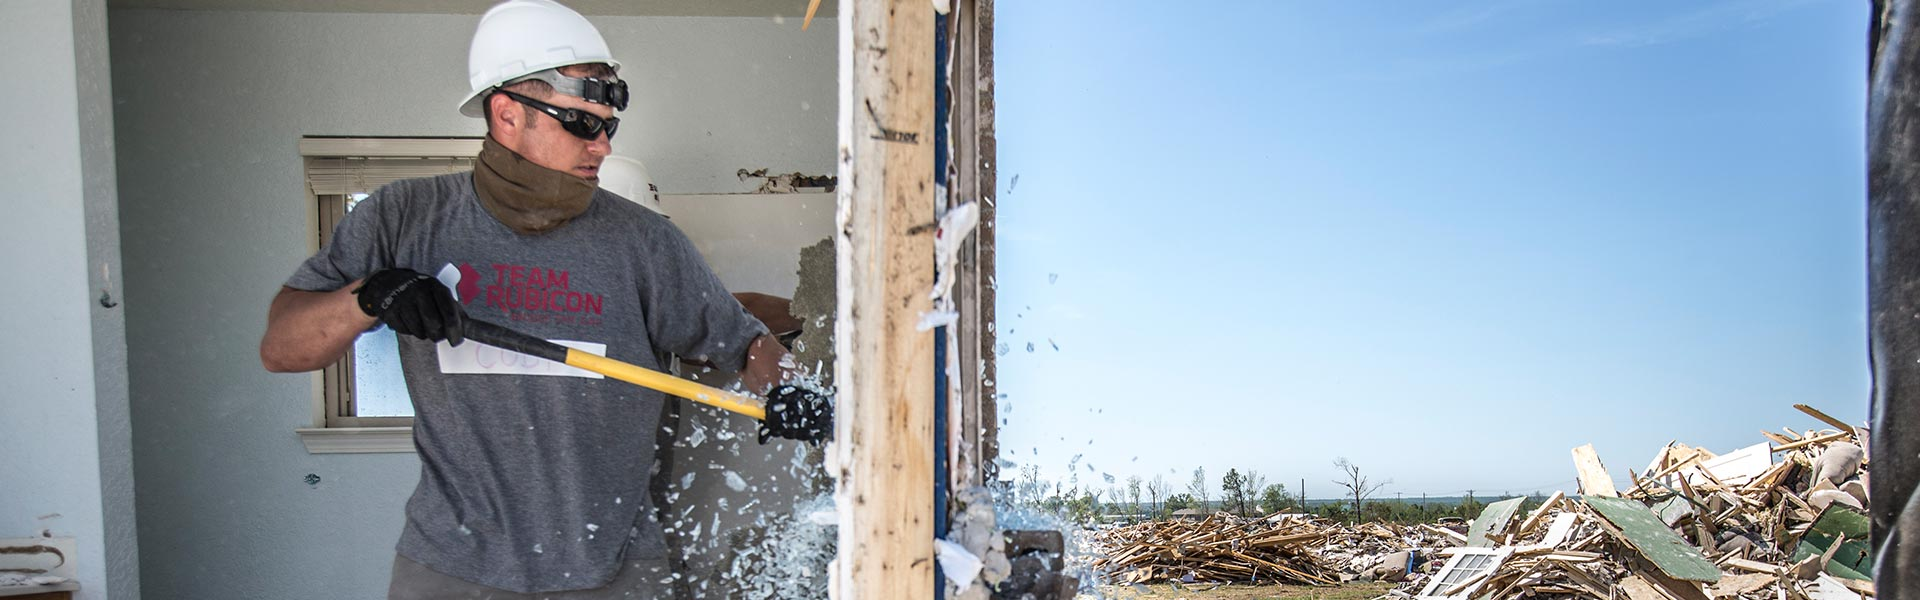 Team Rubicon volunteer demolishes the remnants of a home after a devastating tornado.